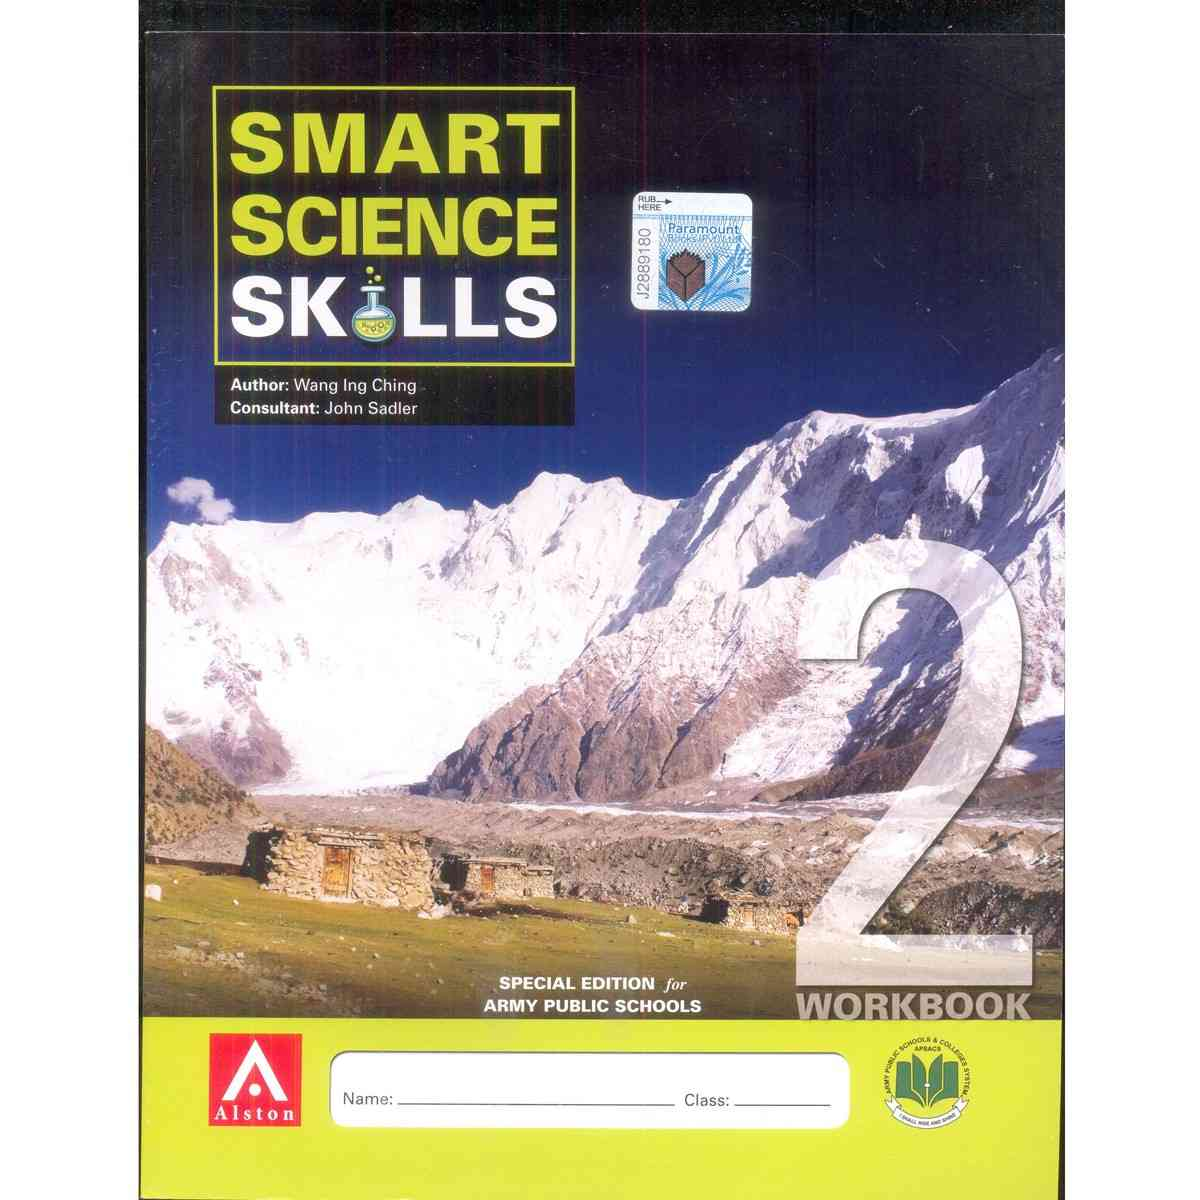 Smart Science Skills Workbook 2